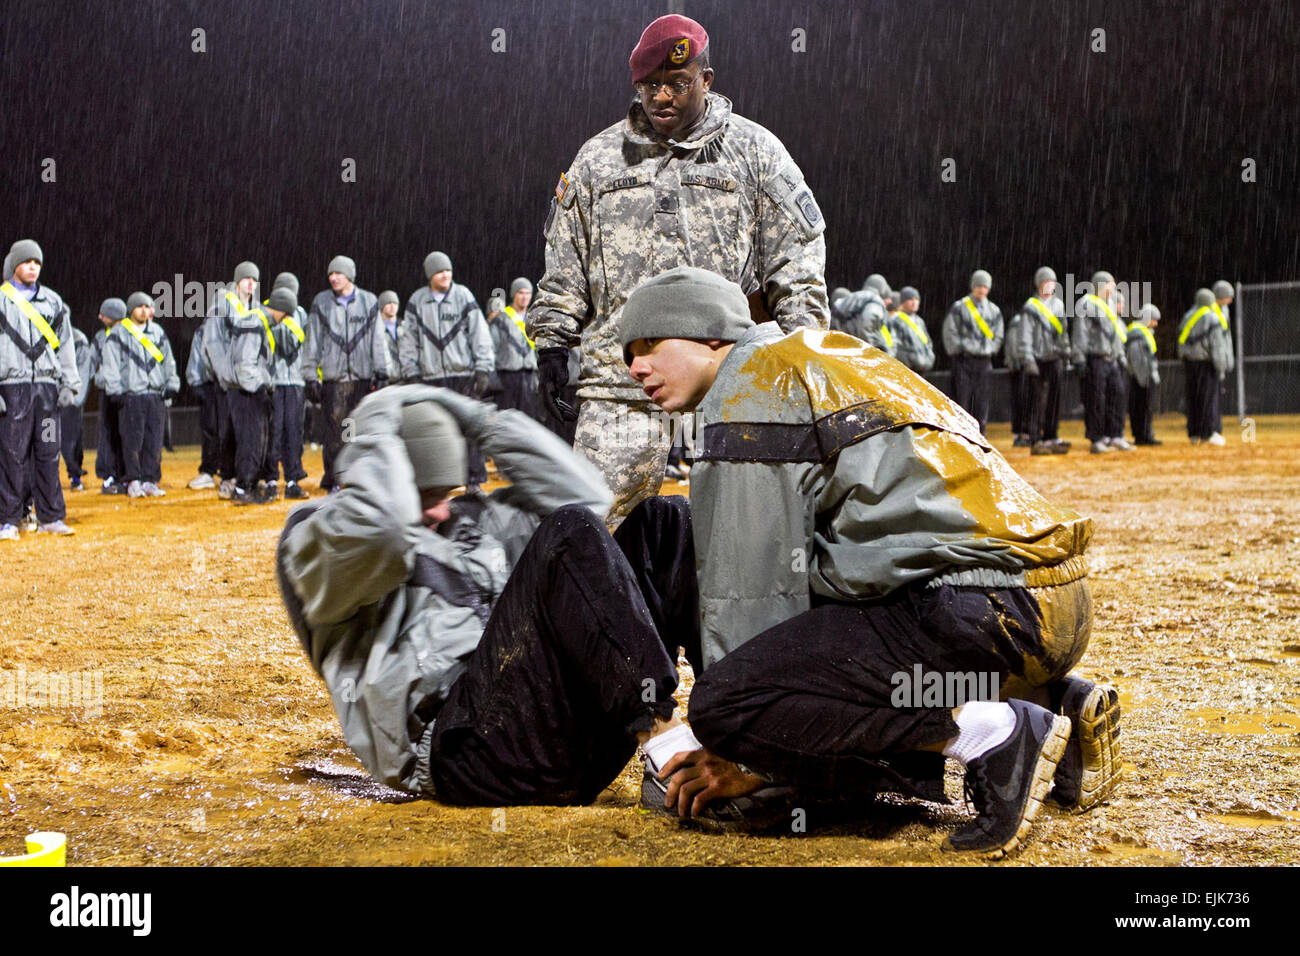 Apft stock photos apft stock images alamy sgt 1st class eric lloyd a paratrooper with 1st battalion 504th parachute infantry nvjuhfo Images